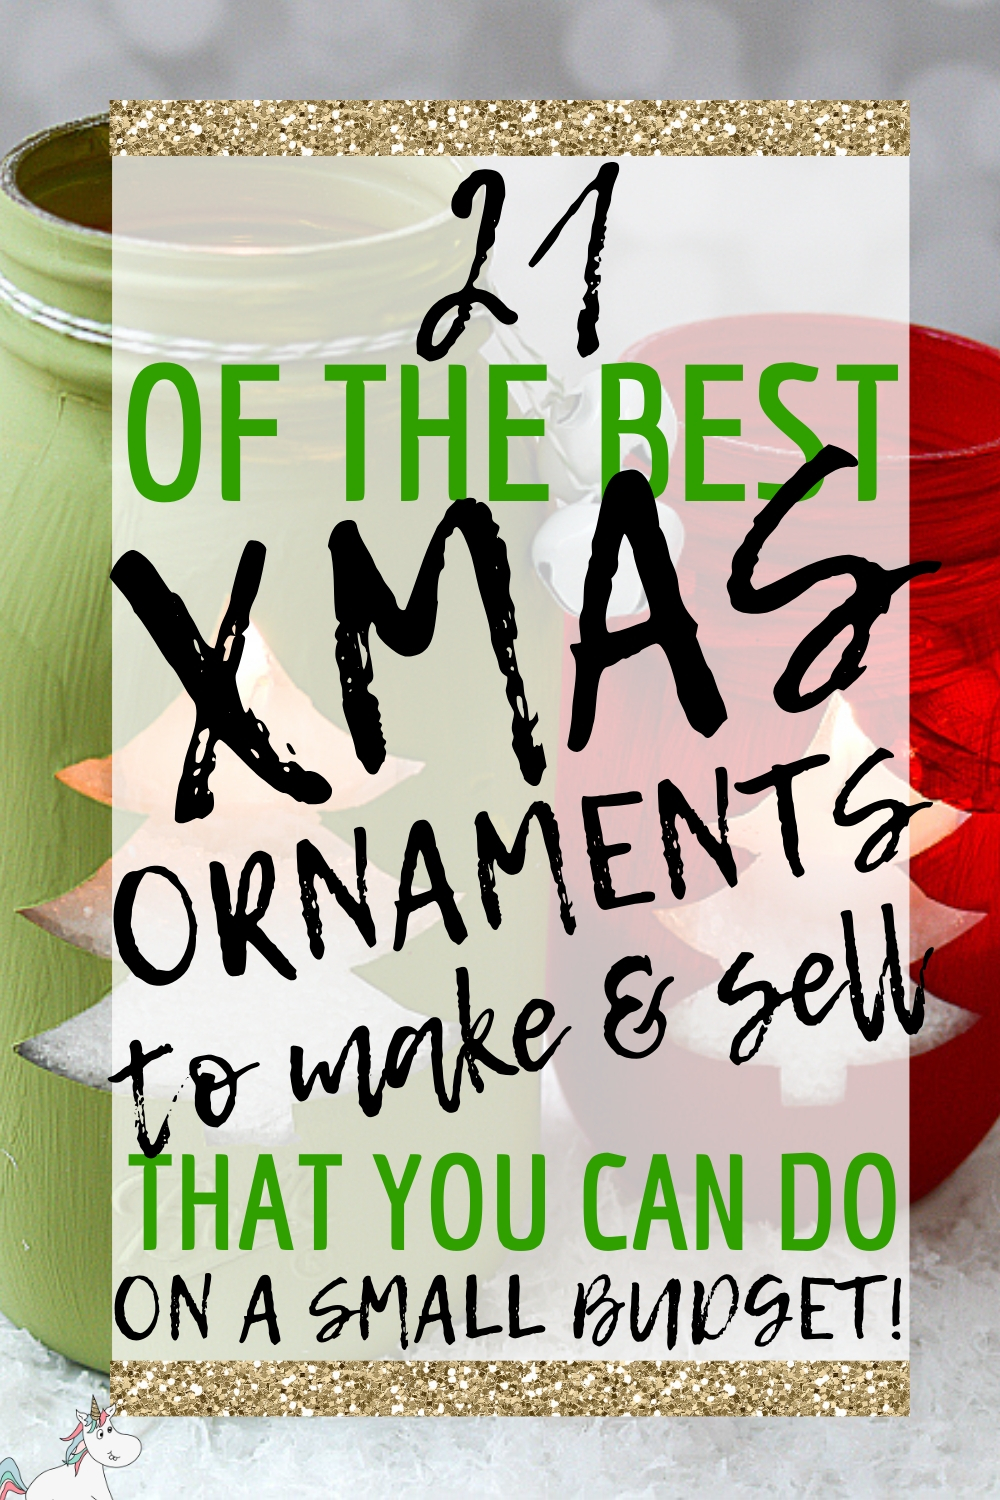 21 of the Best Xmas Ornaments to Make and Sell That Your Can Do on a Small Budget! Are you looking to make some extra cash this Christmas? Then look no further than these DIY Christmas Decorations you can make and sell for profit... they're all cheap to make and proven to be really popular! Click the pin to see all the ideas. #themummyfront